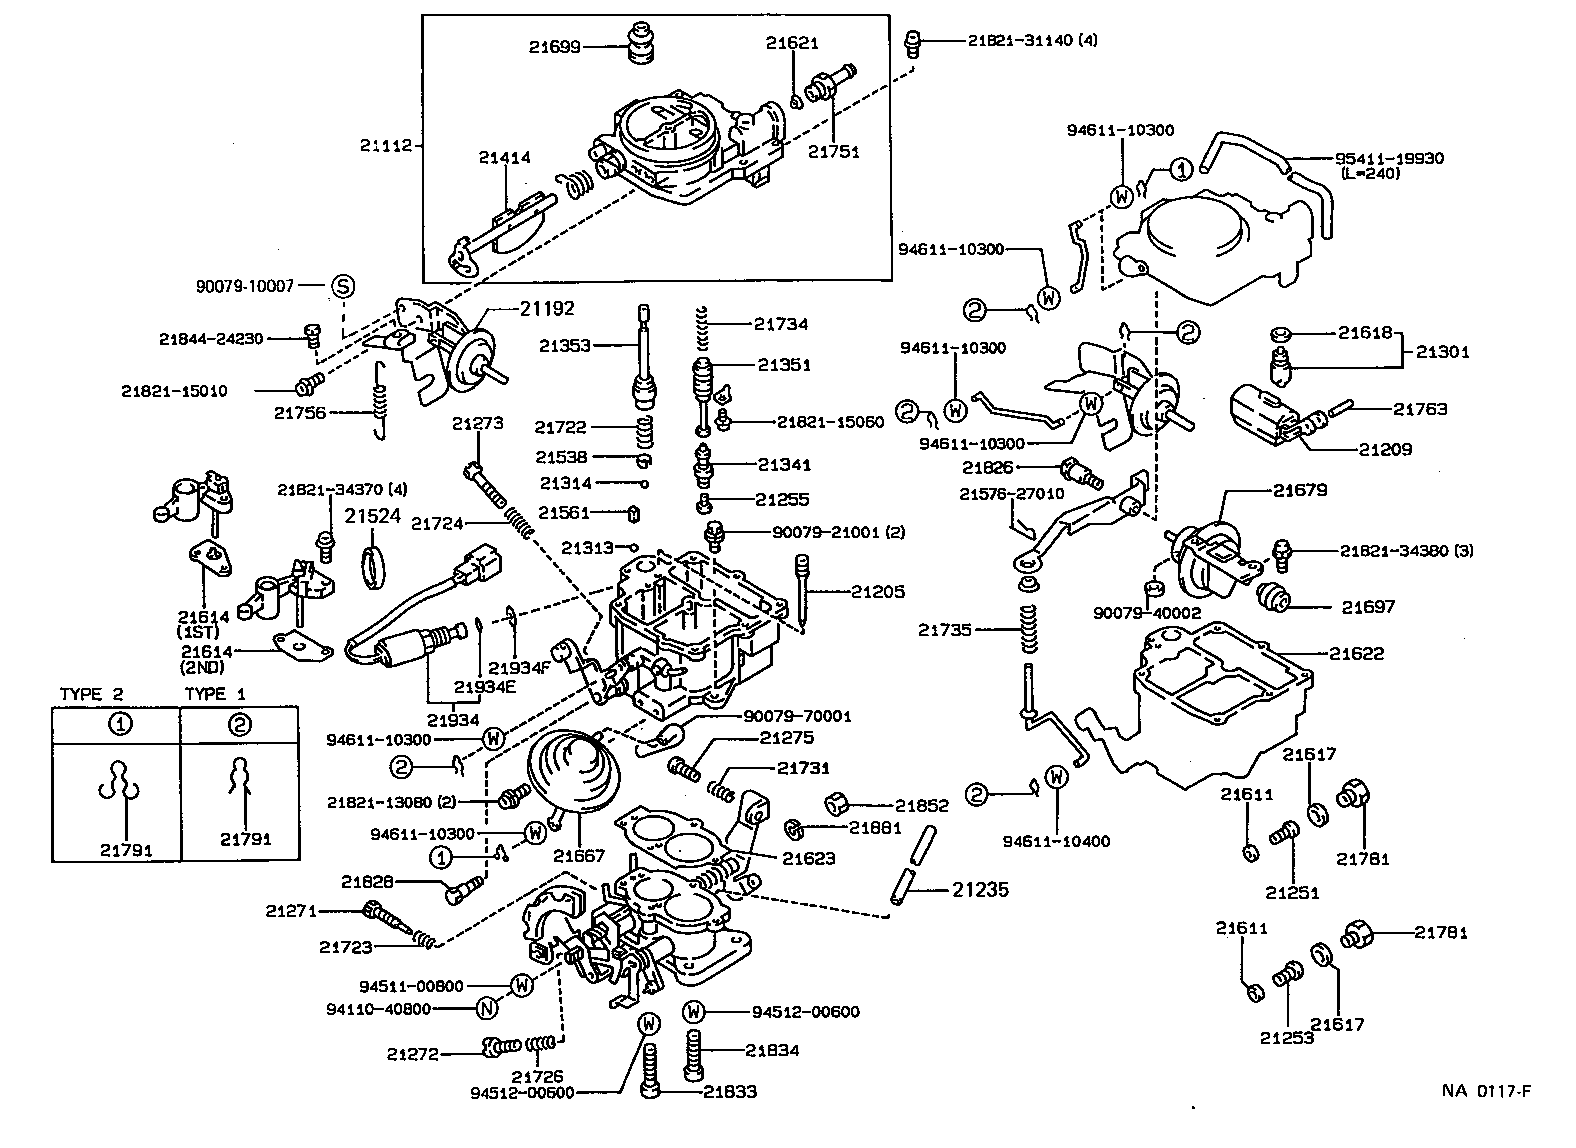 fj40 carburetor diagram